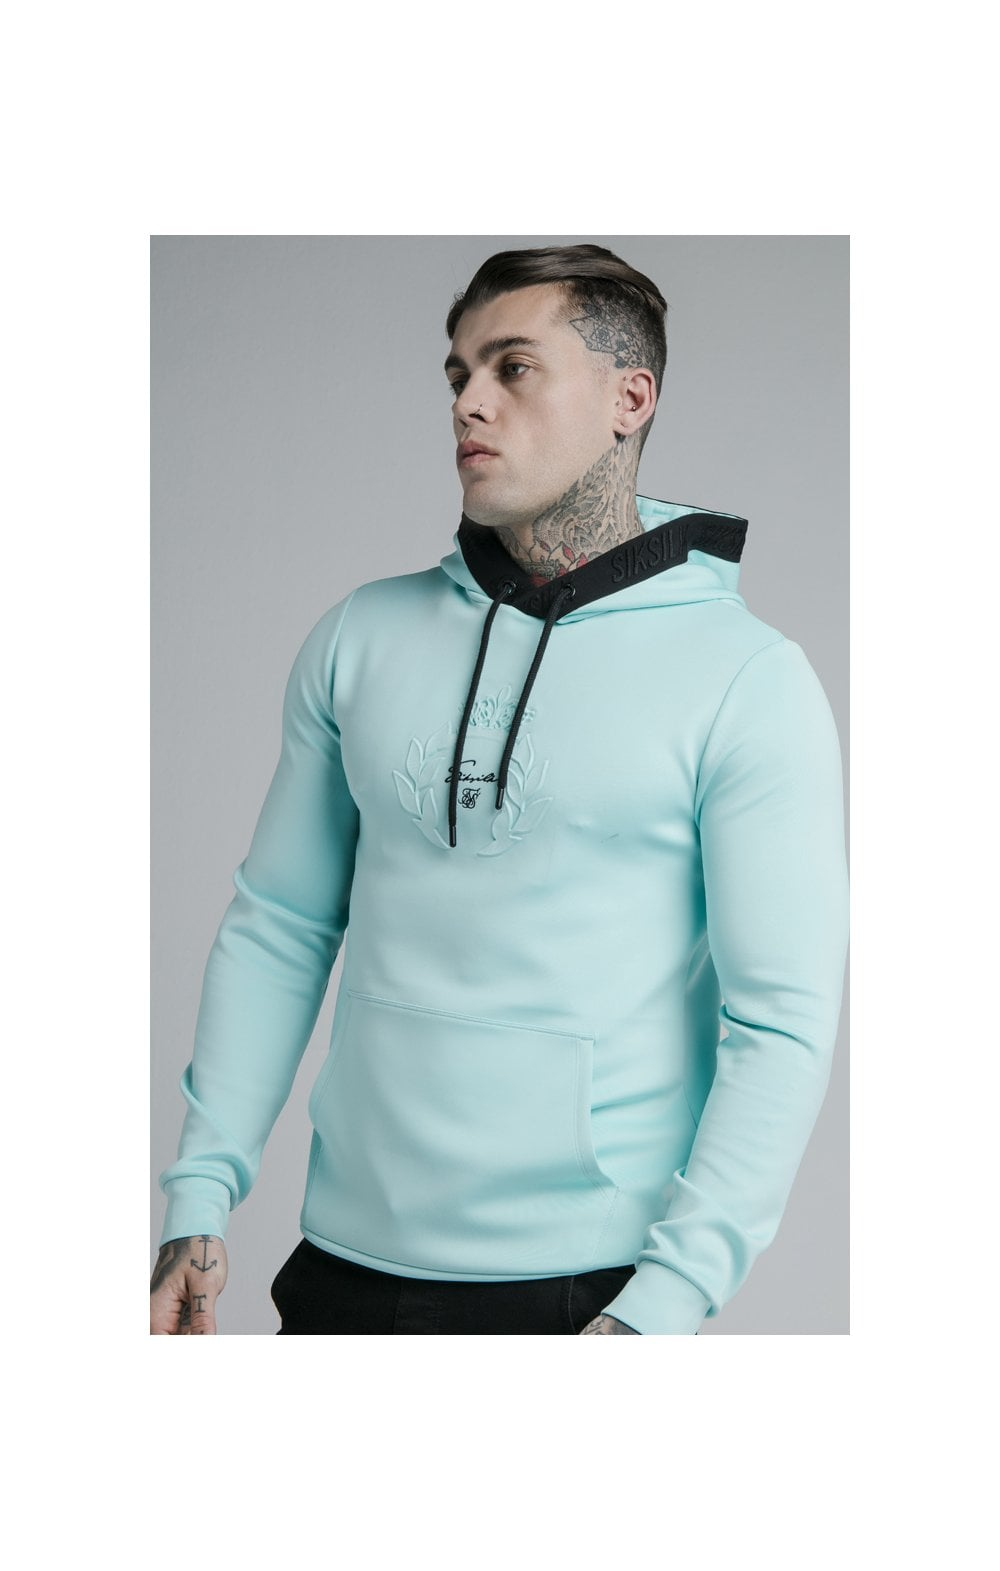 Load image into Gallery viewer, SikSilk Prestige Overhead Hoodie - Teal